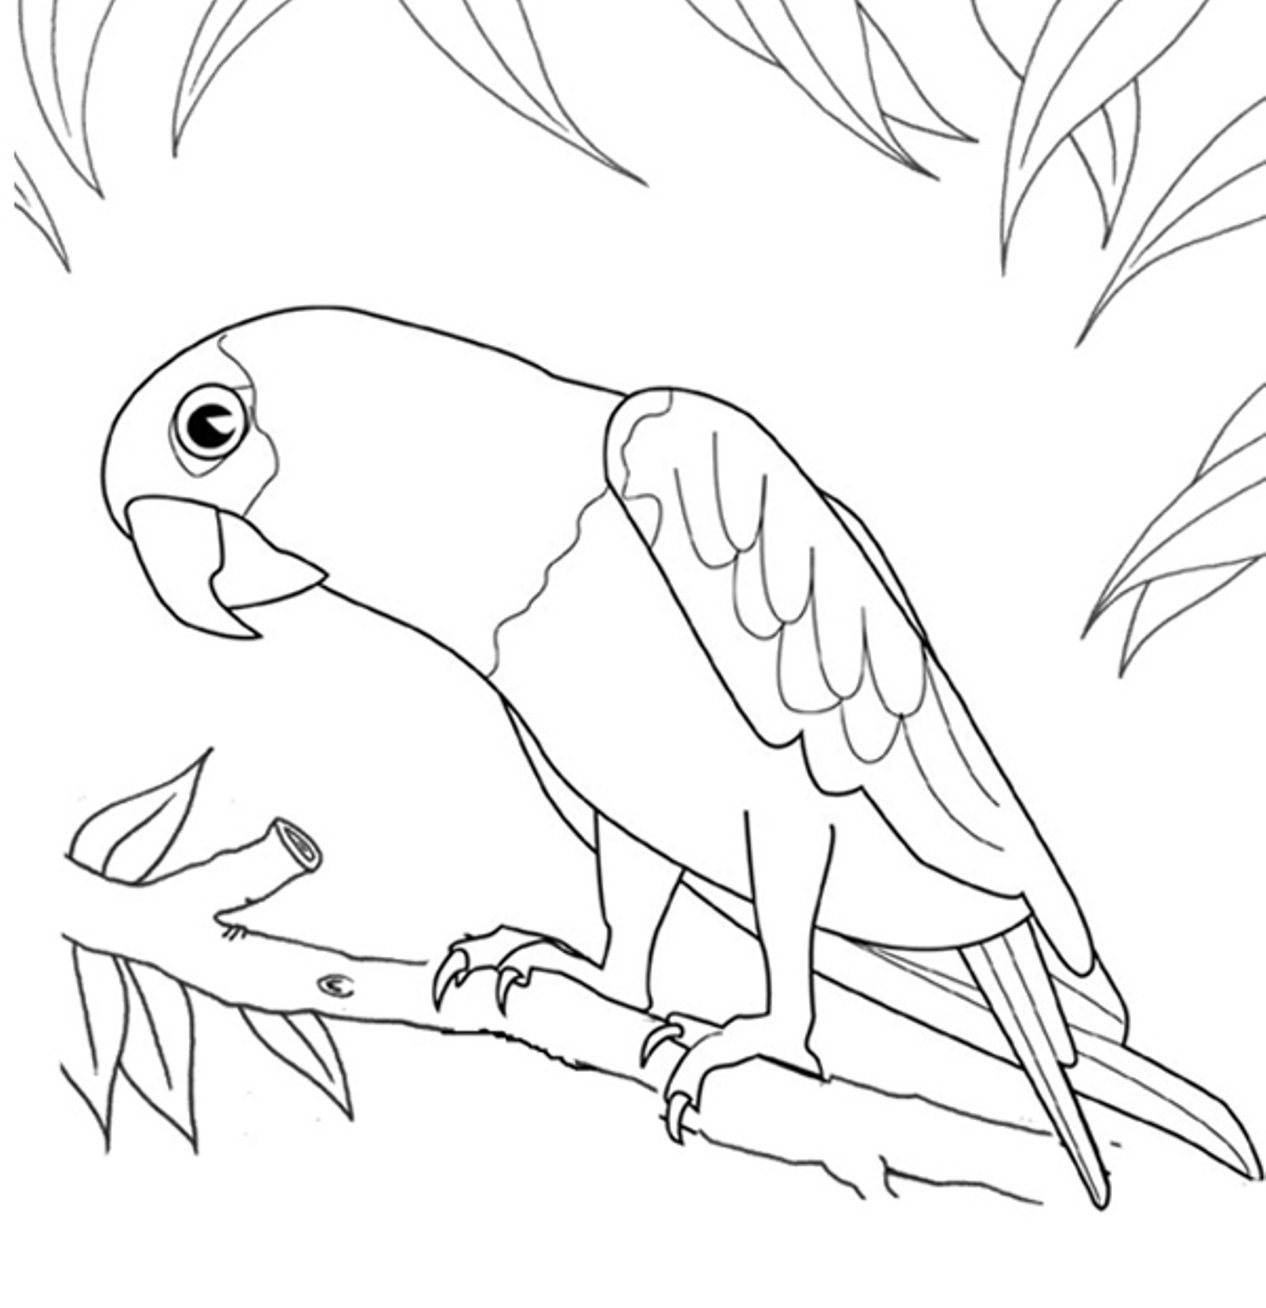 Parrot Coloring Pages Printable Bird Coloring Page Parrot Animal Coloring Pages Of